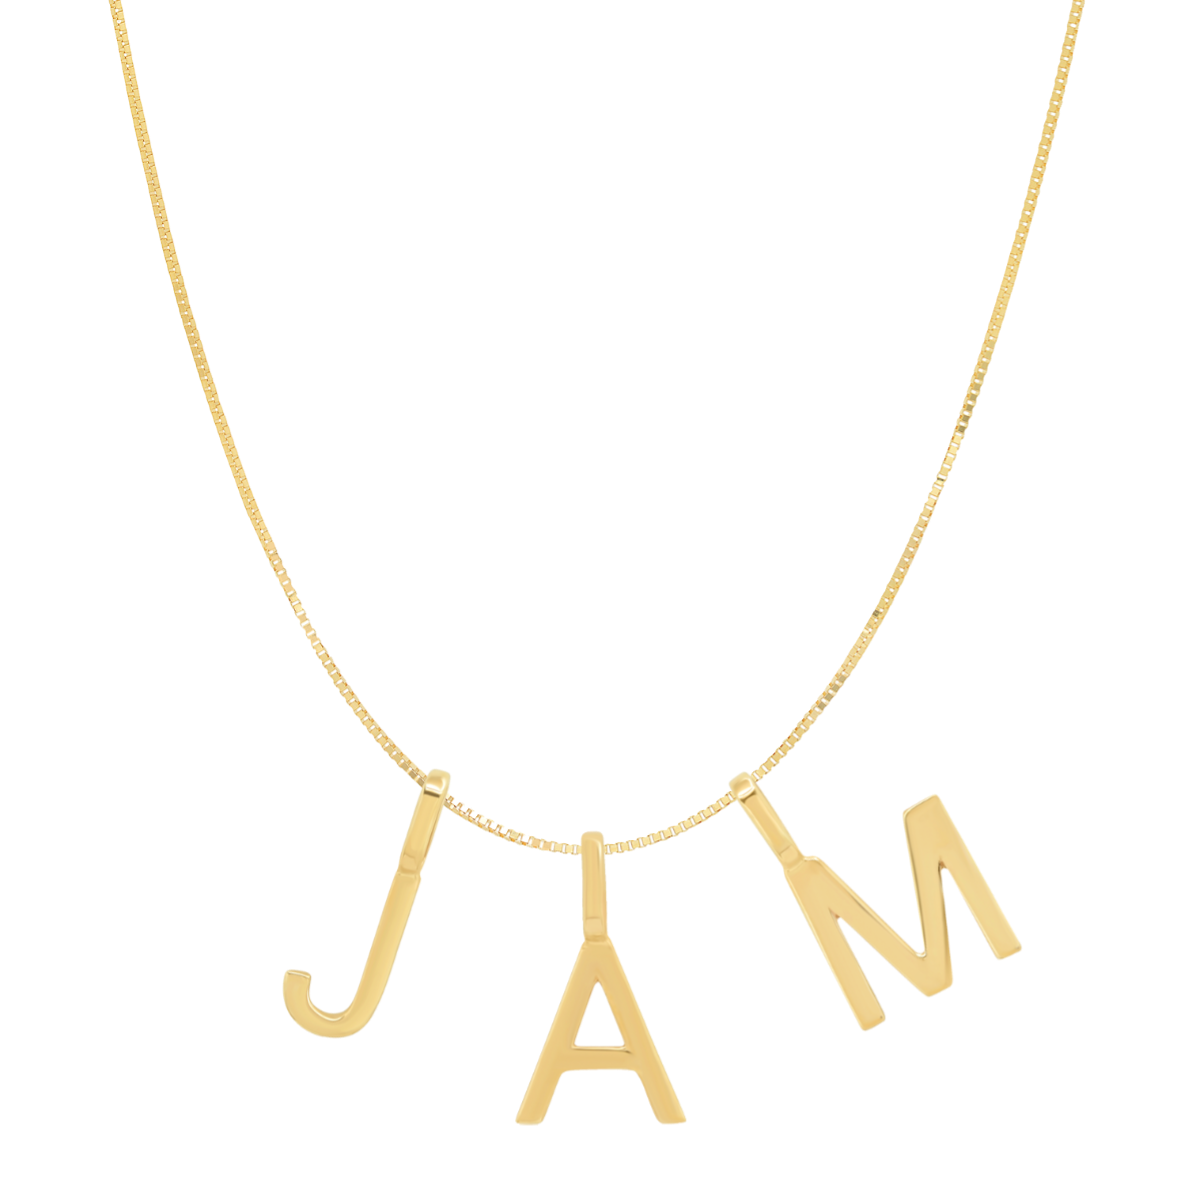 Tai Fine 14k Gold Initial Charm Necklace - Customer's Product with price 385.00